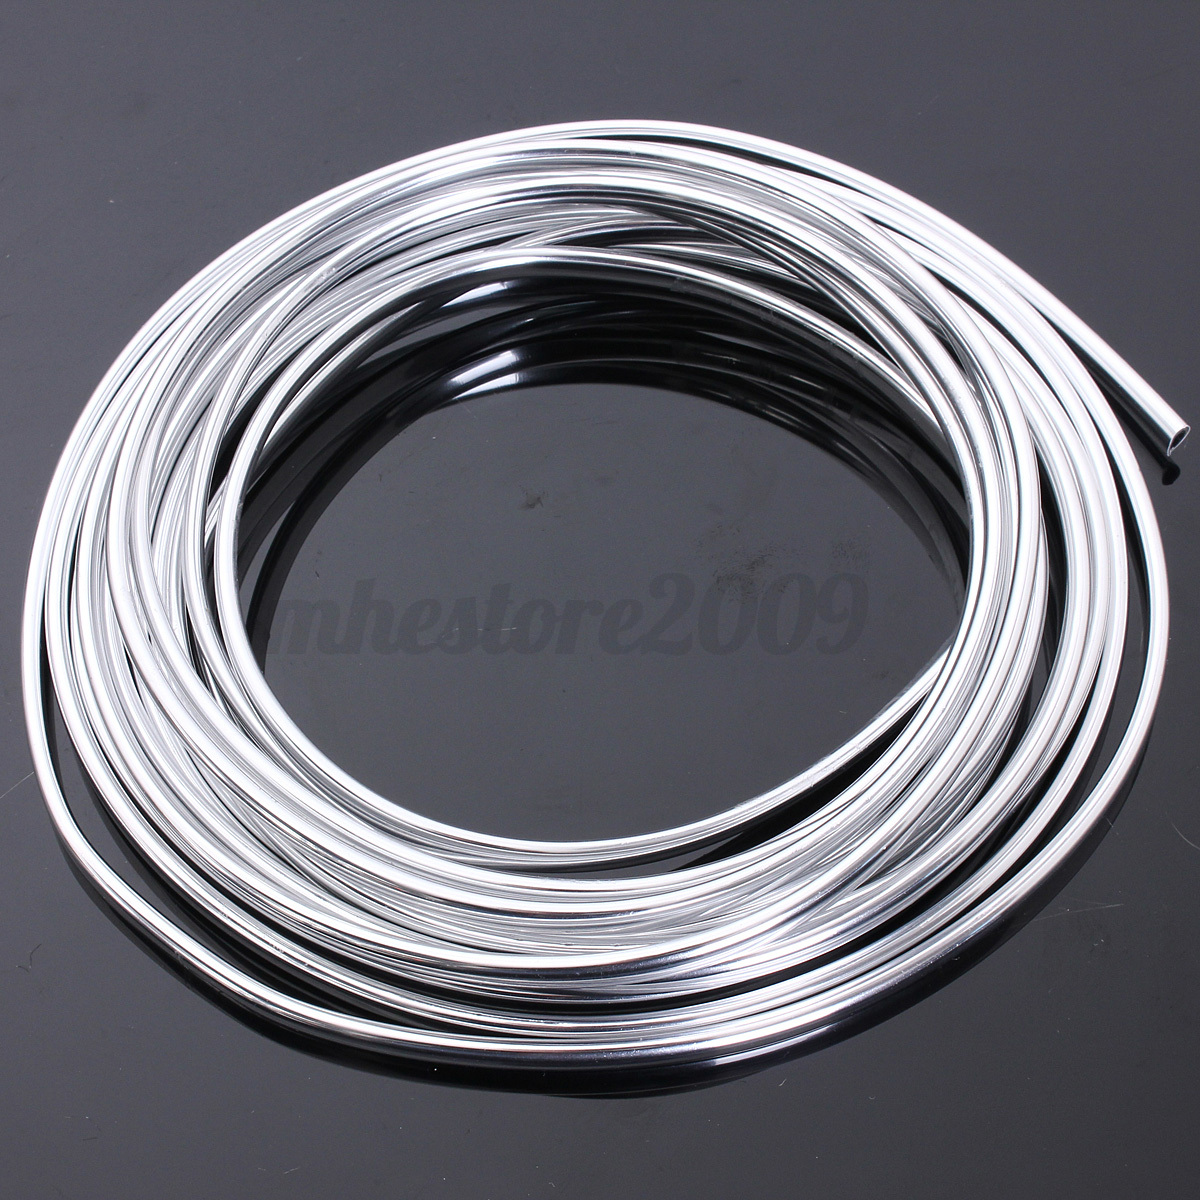 6m Chrome Flexible Moulding Trim Molding Strip Car Auto